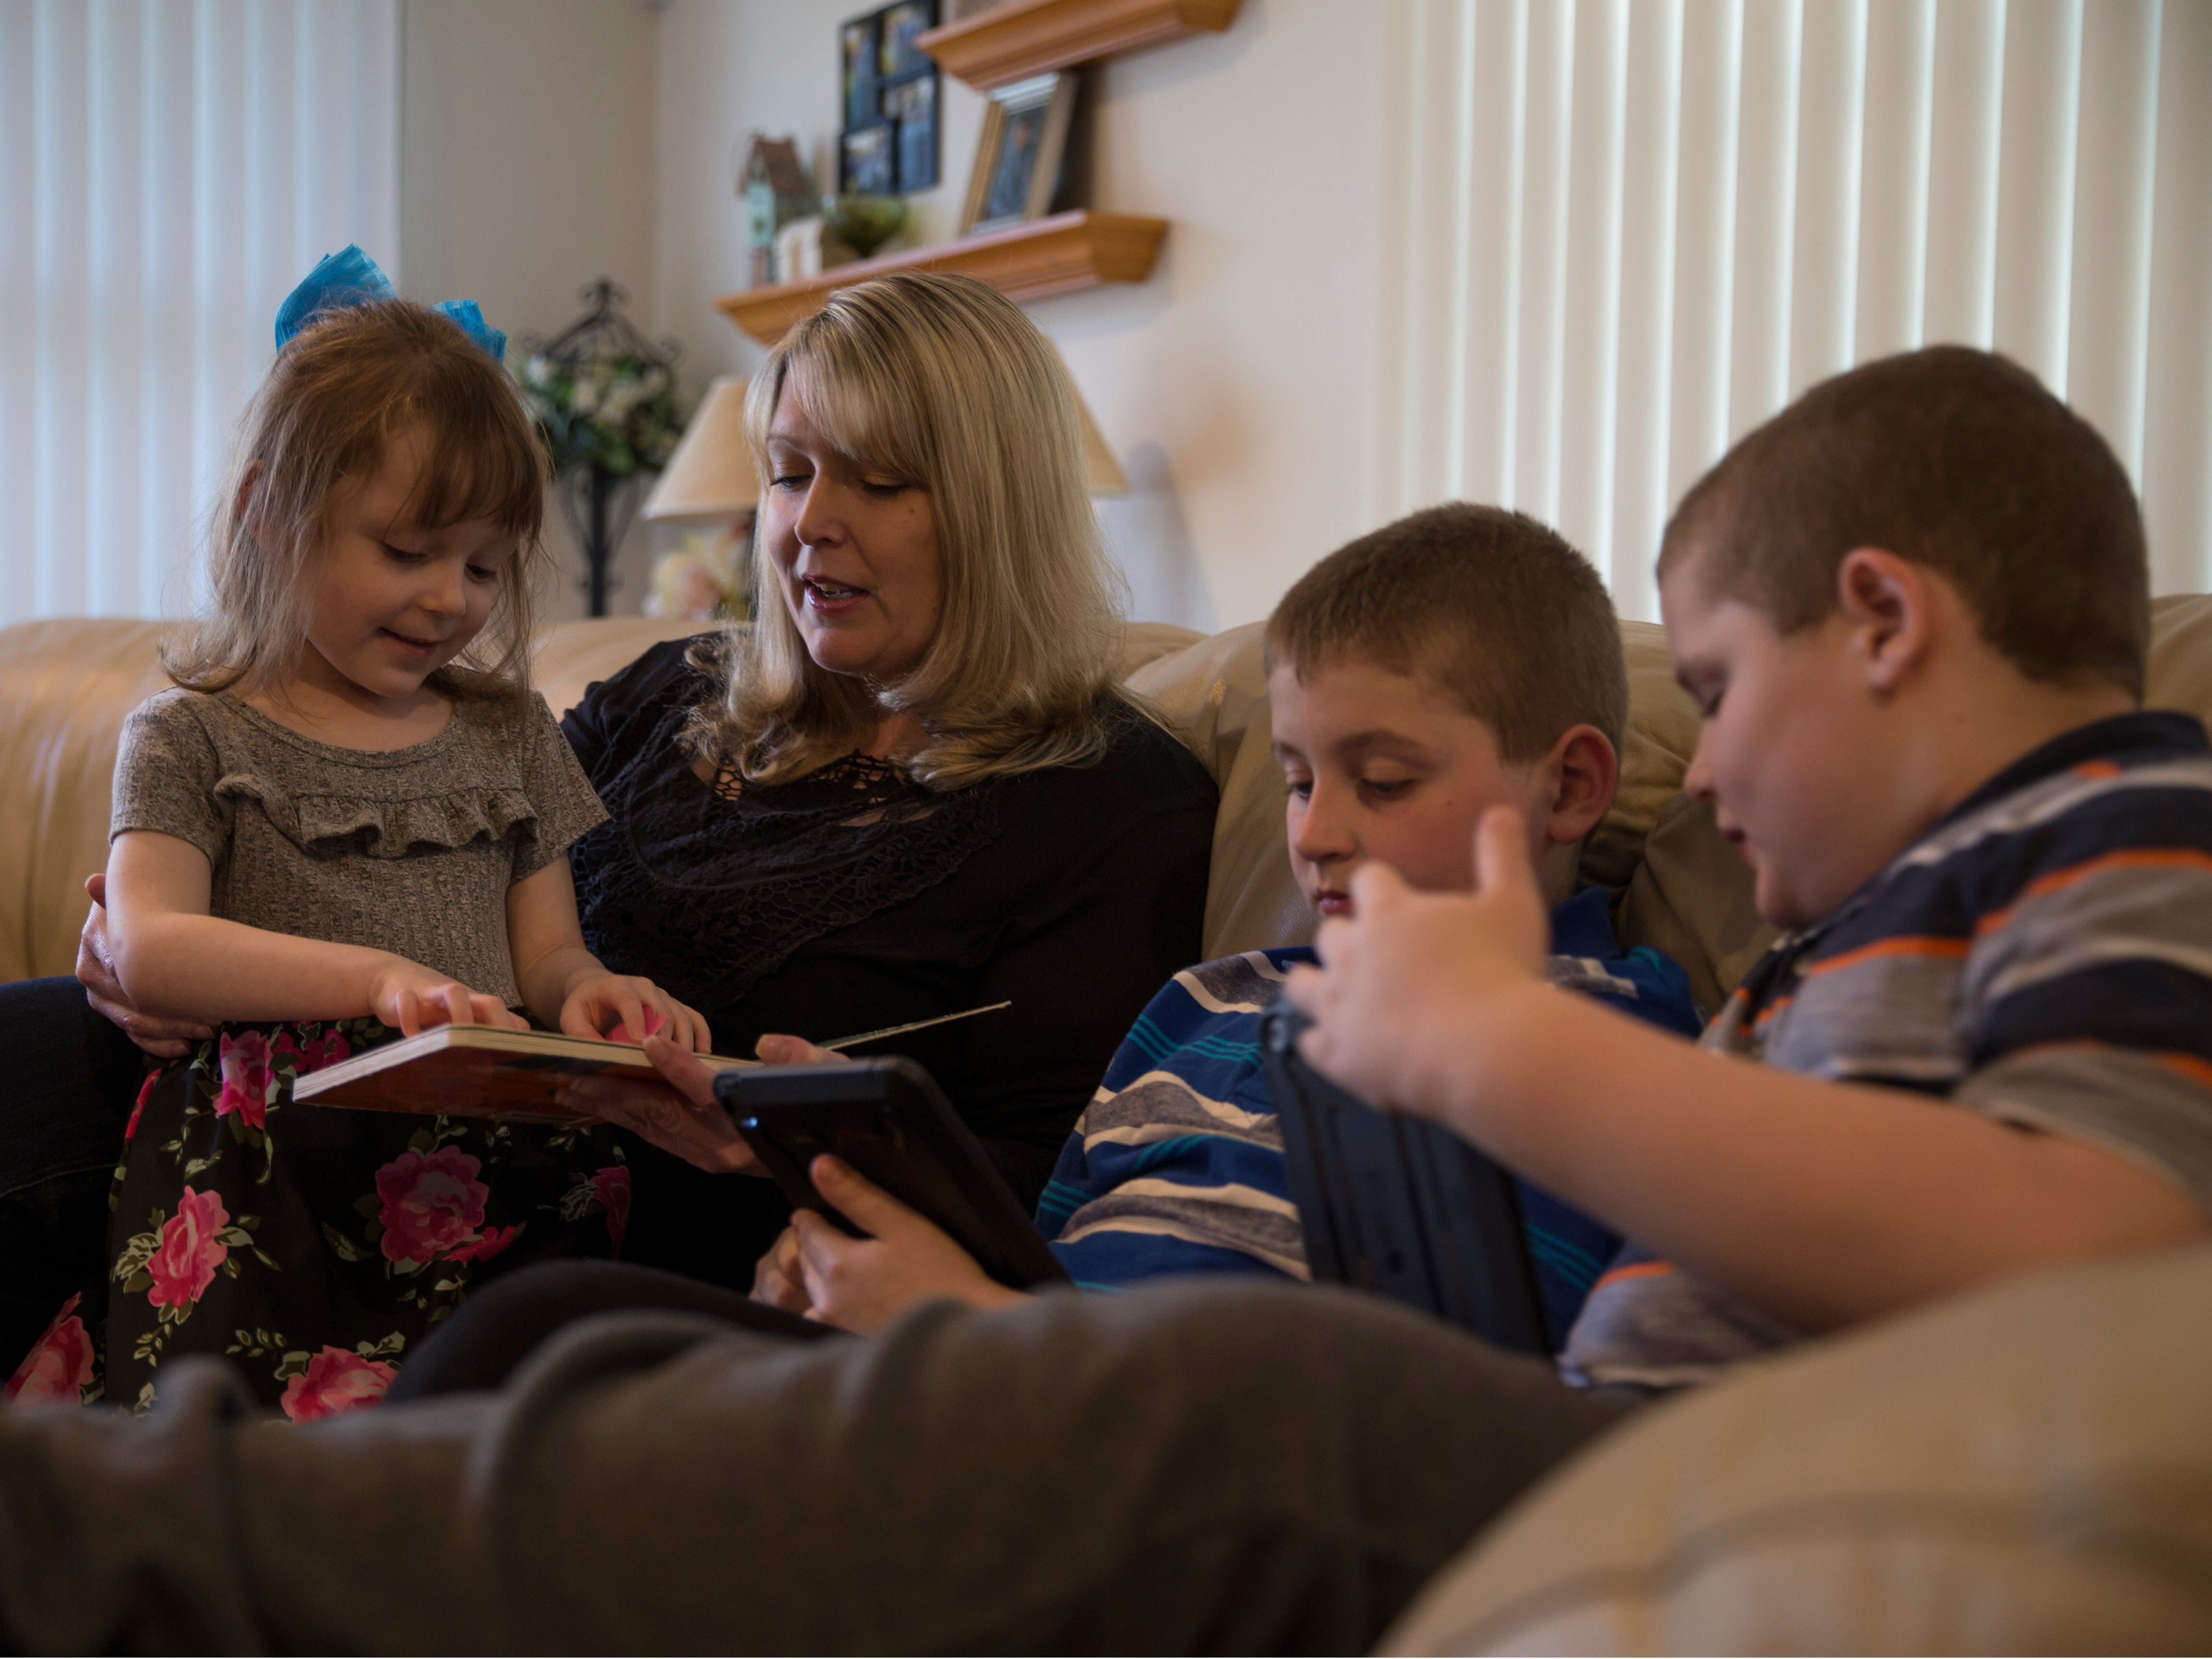 Amie Cottrell with her children Katelyn, 4, Nicholas, 9, and Michael, 7. Jackson native Amie Cottrell is a 39-year-old mother of four young children that is battling Stage 4 breast cancer. She shares her story about managing motherhood despite the advanced cancer. Jackson, NJTuesday, May 7, 2019